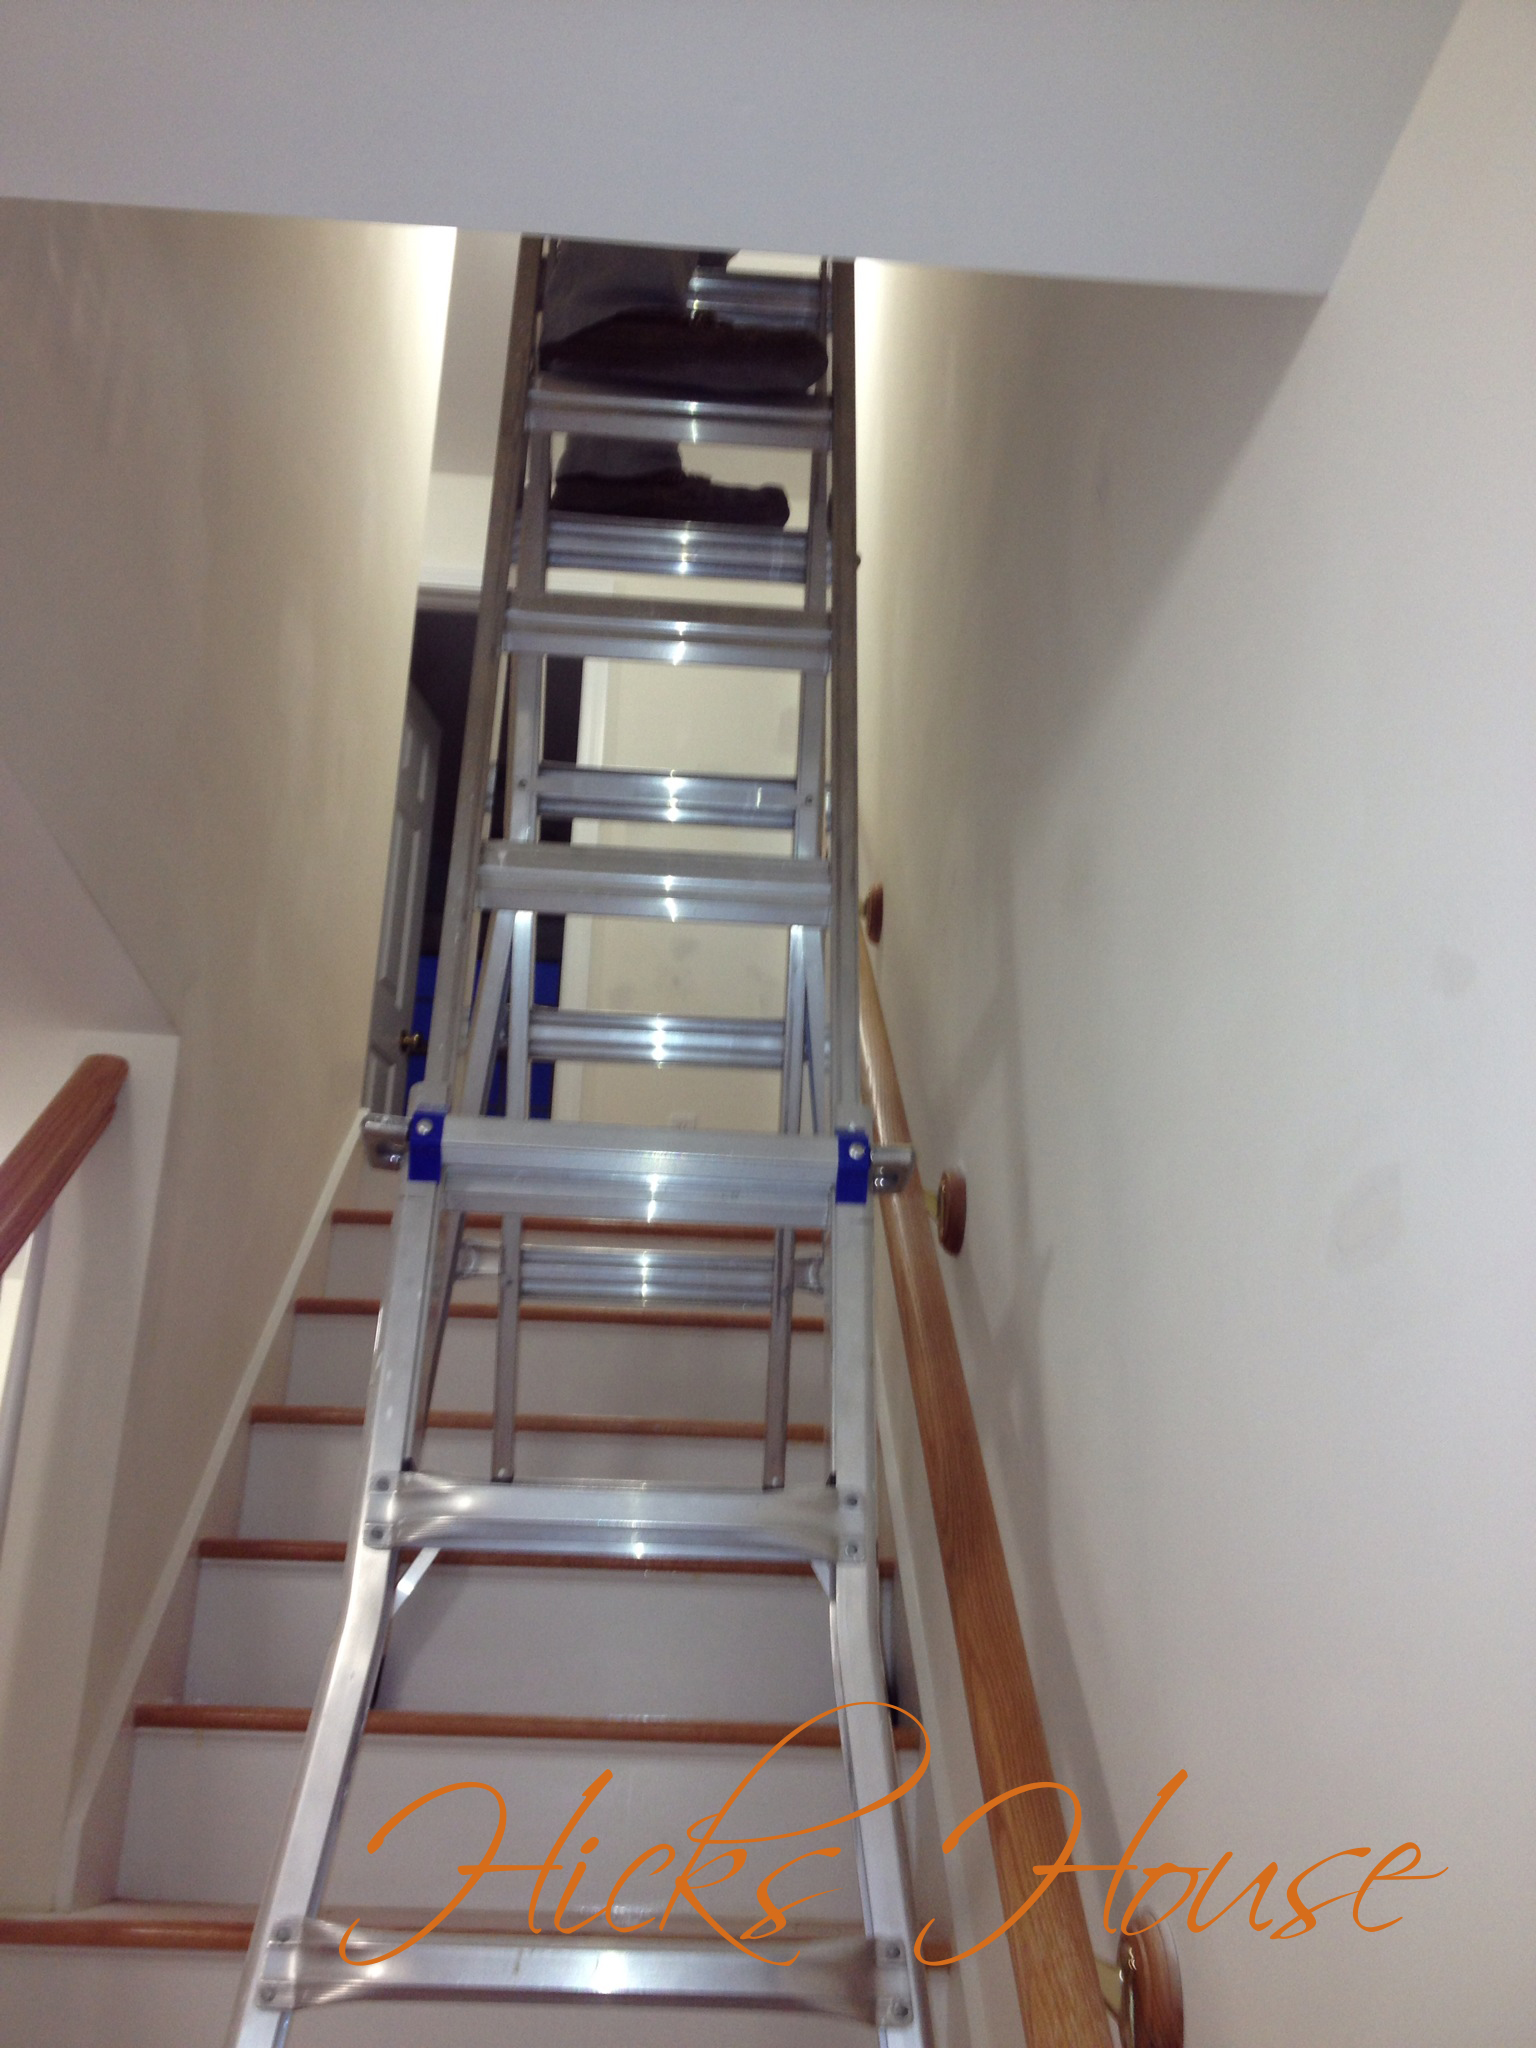 Painting hicks house - Ladders for decorating stairs ...